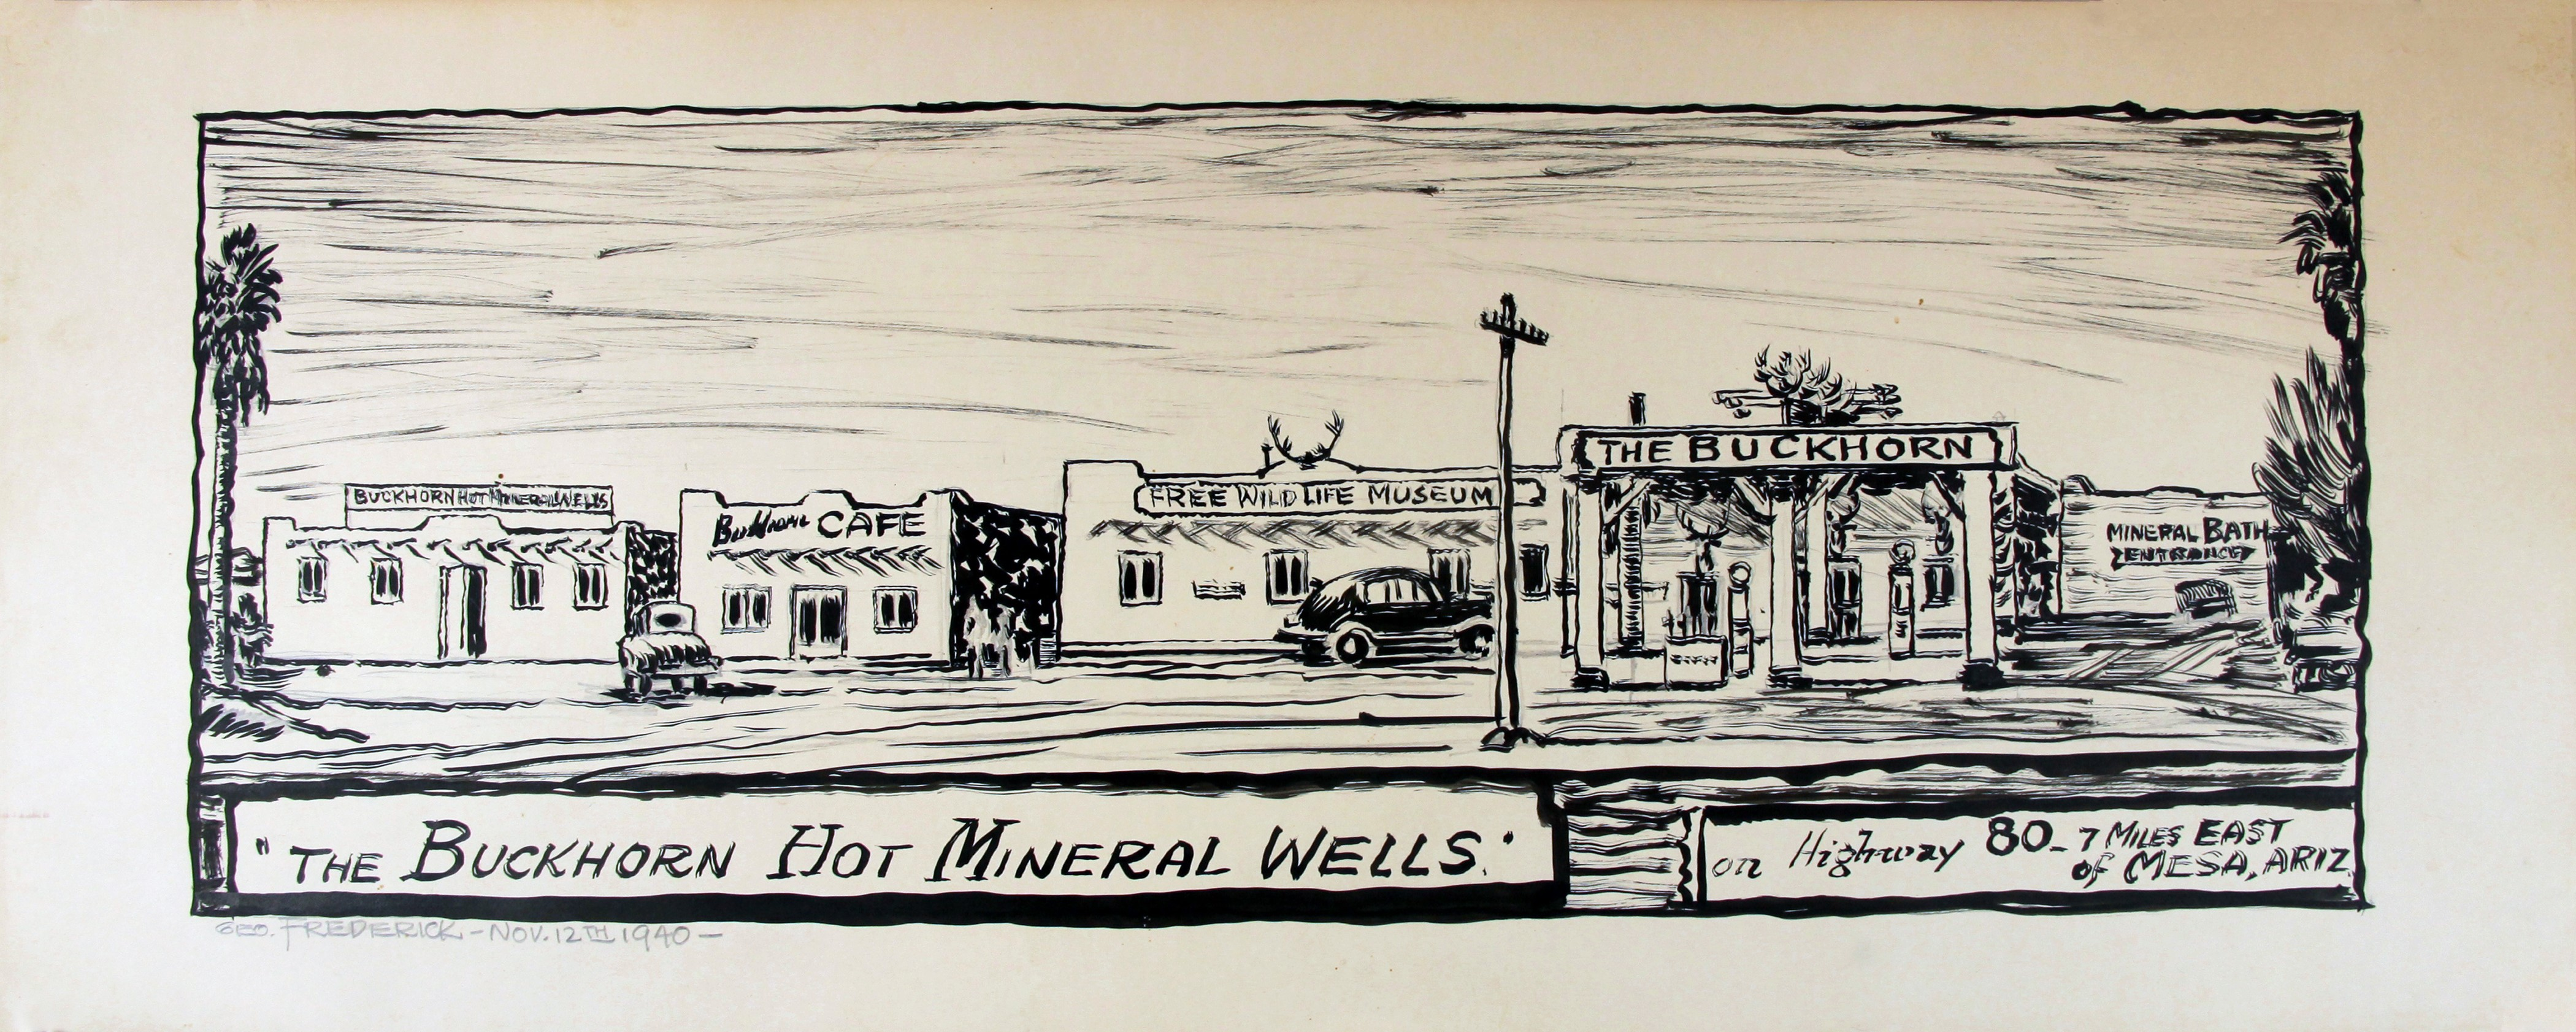 The earliest known rendering of the Buckhorn was created by artist-in residence George Frederick in 1940. Although slightly modified over the years, all the original buildings are still in place.